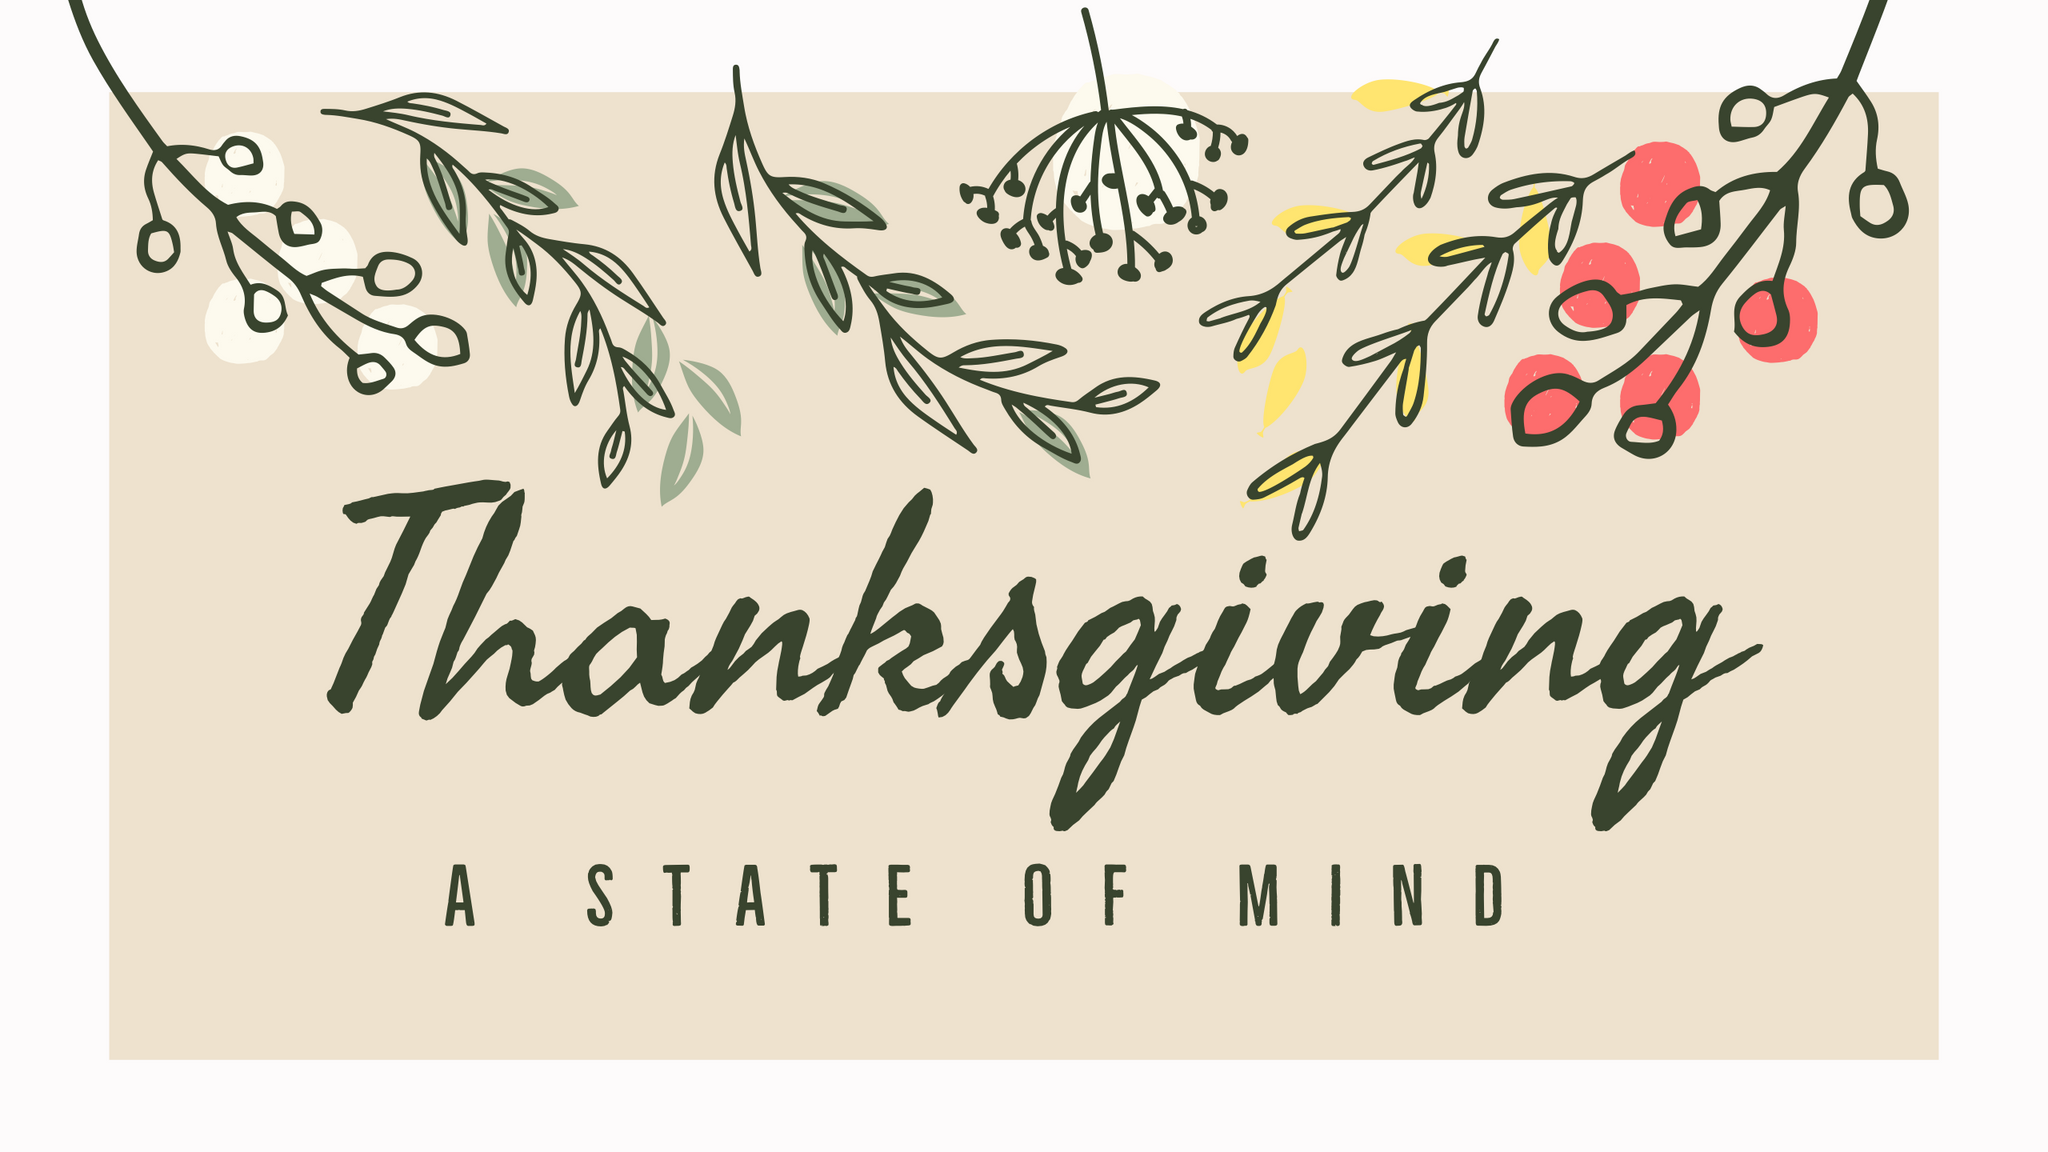 Thanksgiving: A State of Mind